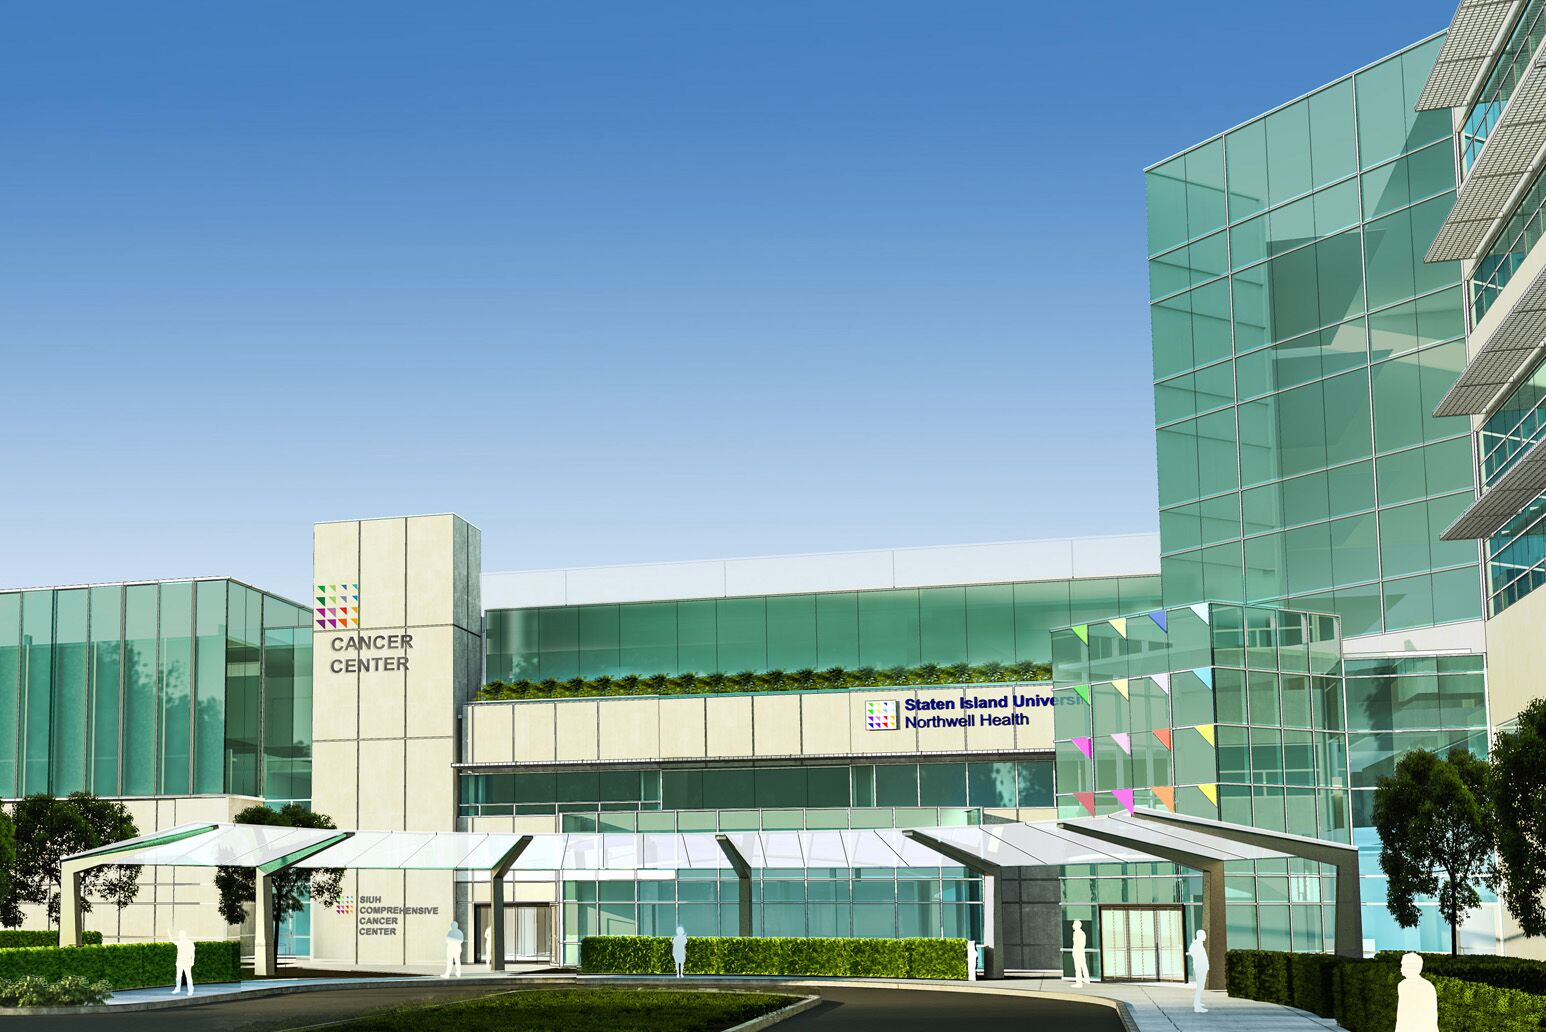 Rendering of Staten Island University Hospital's new state-of-the-art cancer center.